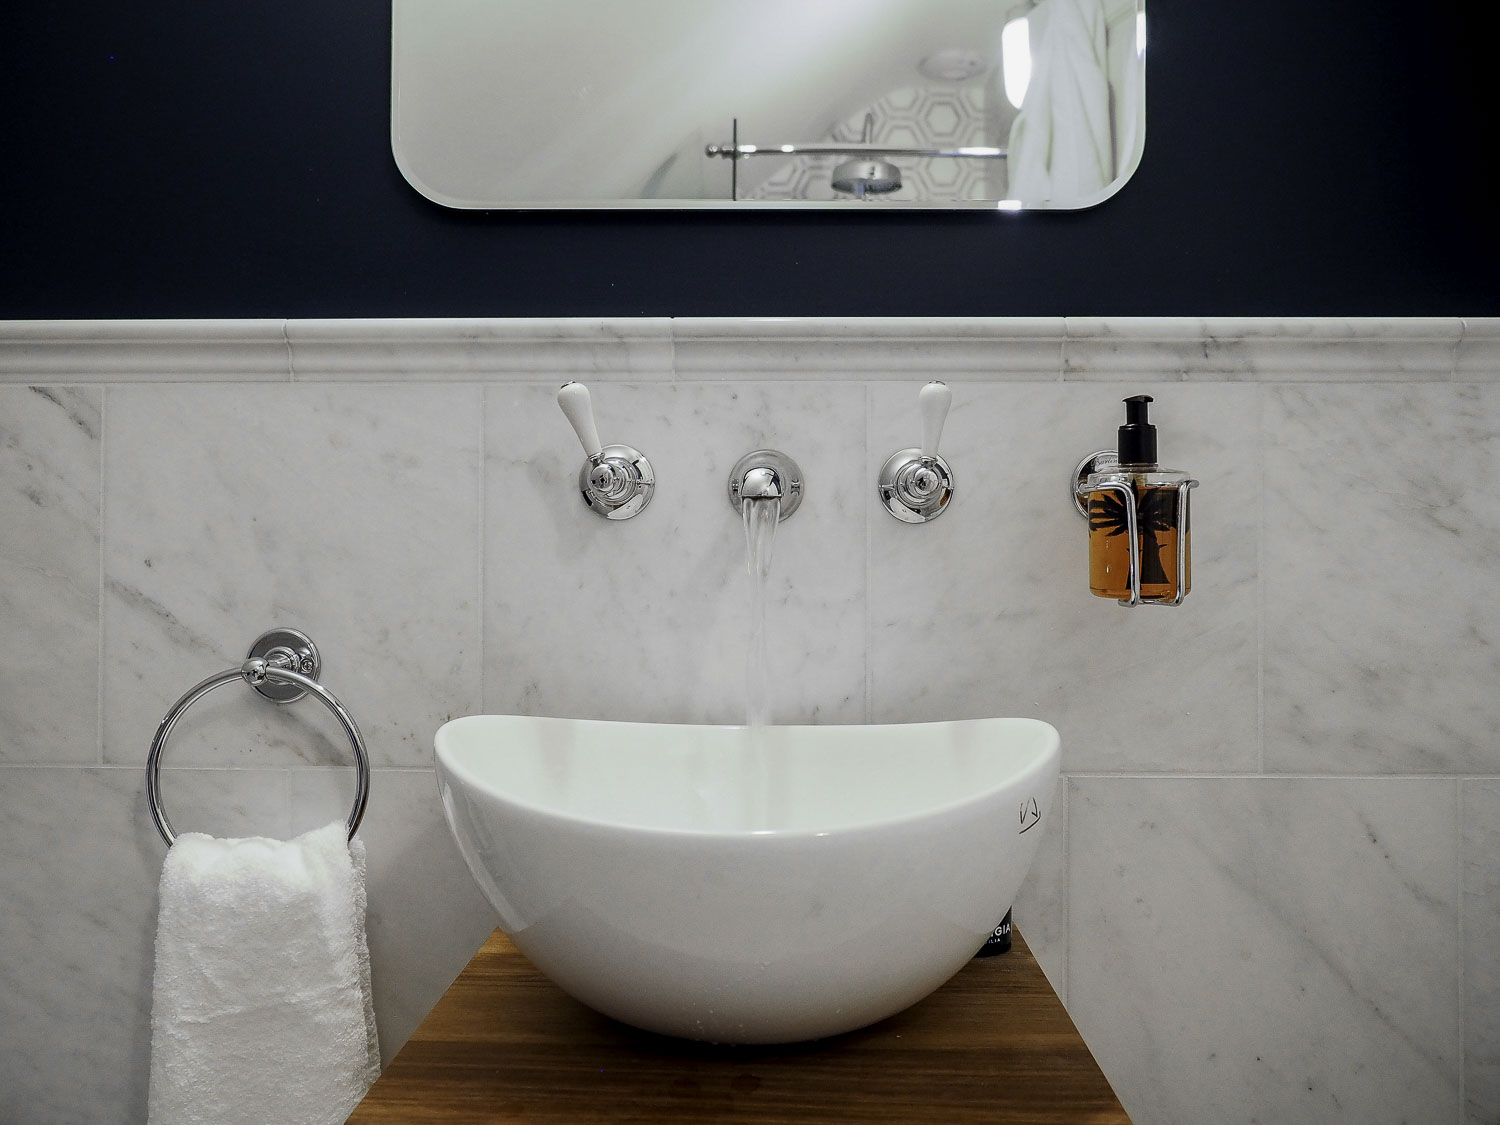 marlborough_road-ensuite1-1500pw-250kb.jpg